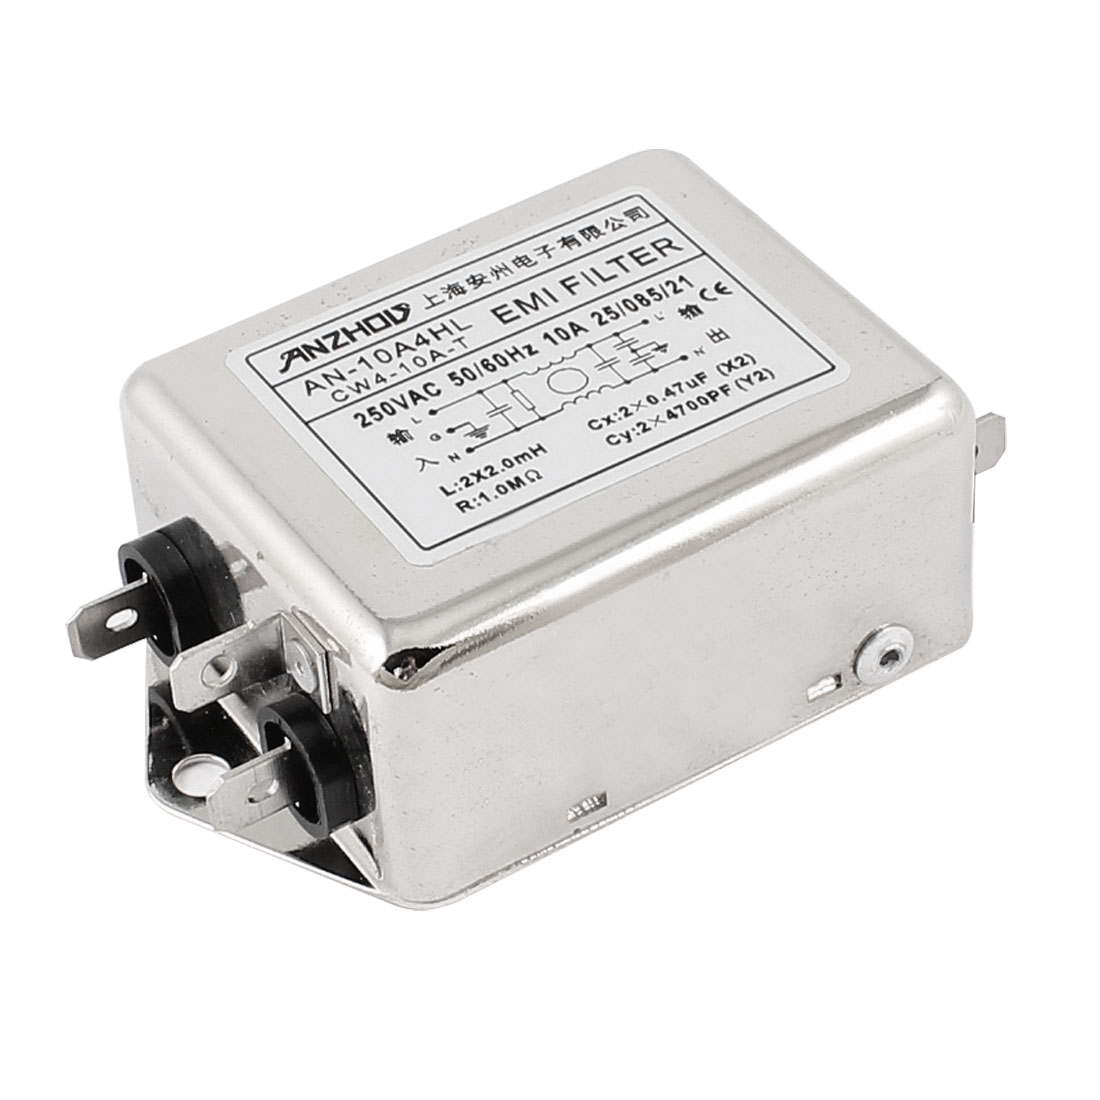 AN-10A4HL AC 250V 10A Single Phase Noise Suppressor Power Line EMI Filter